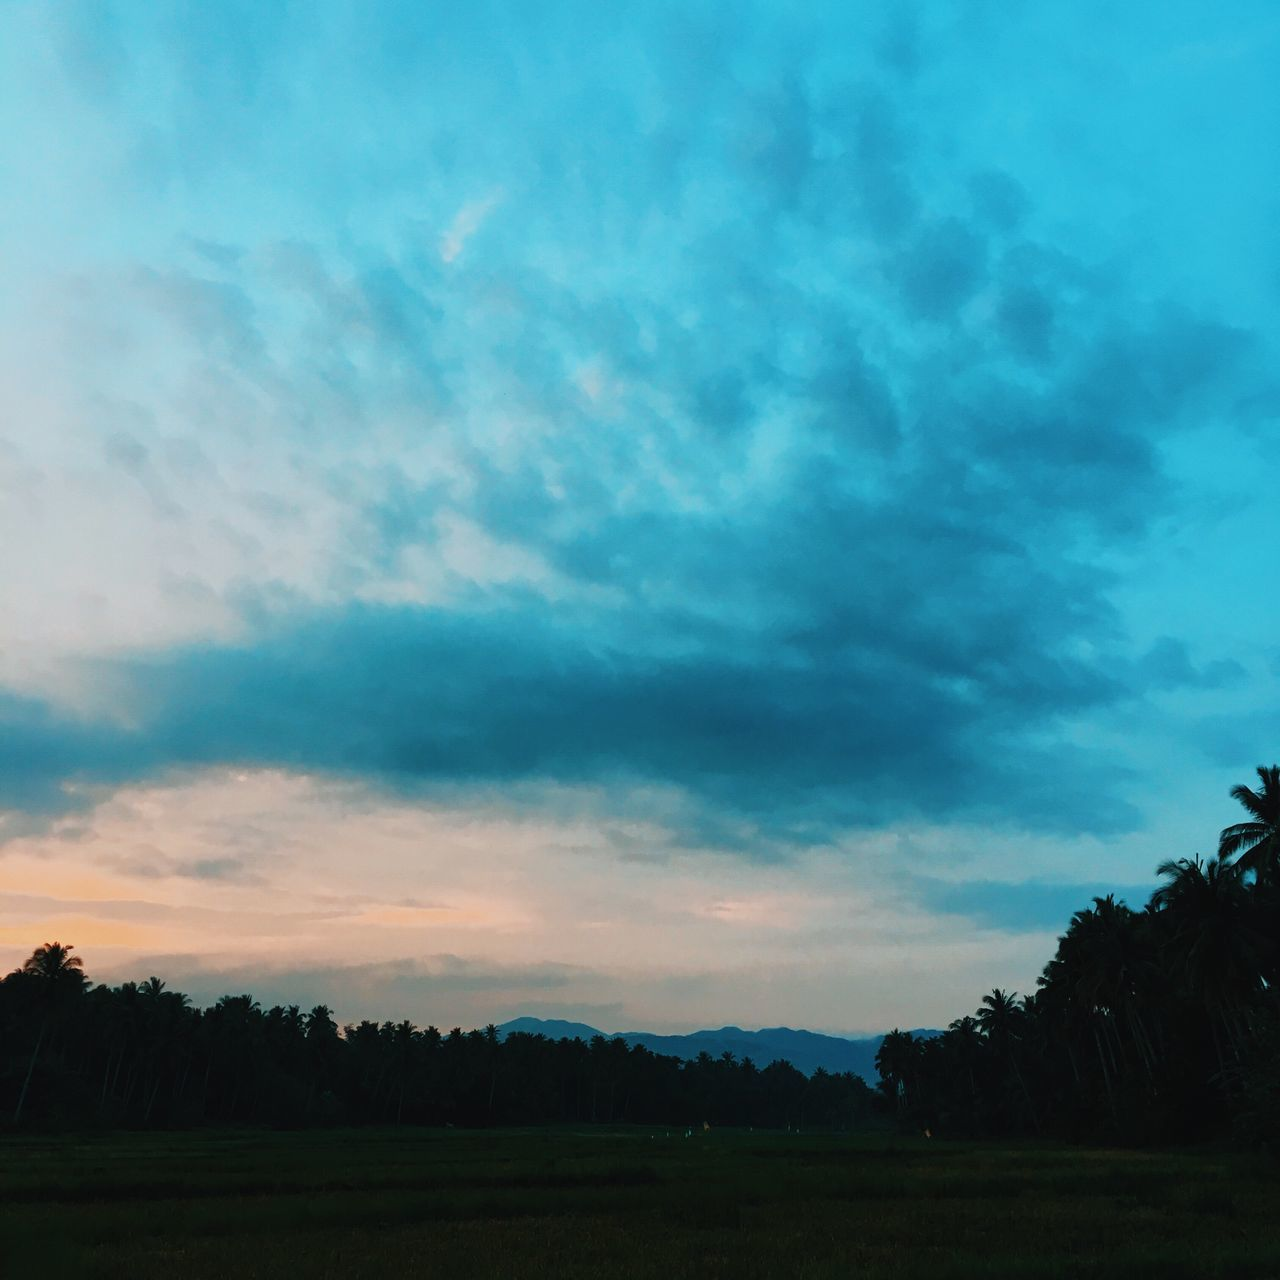 silhouette, sky, beauty in nature, nature, cloud - sky, scenics, tranquility, tranquil scene, tree, landscape, field, sunset, no people, outdoors, day